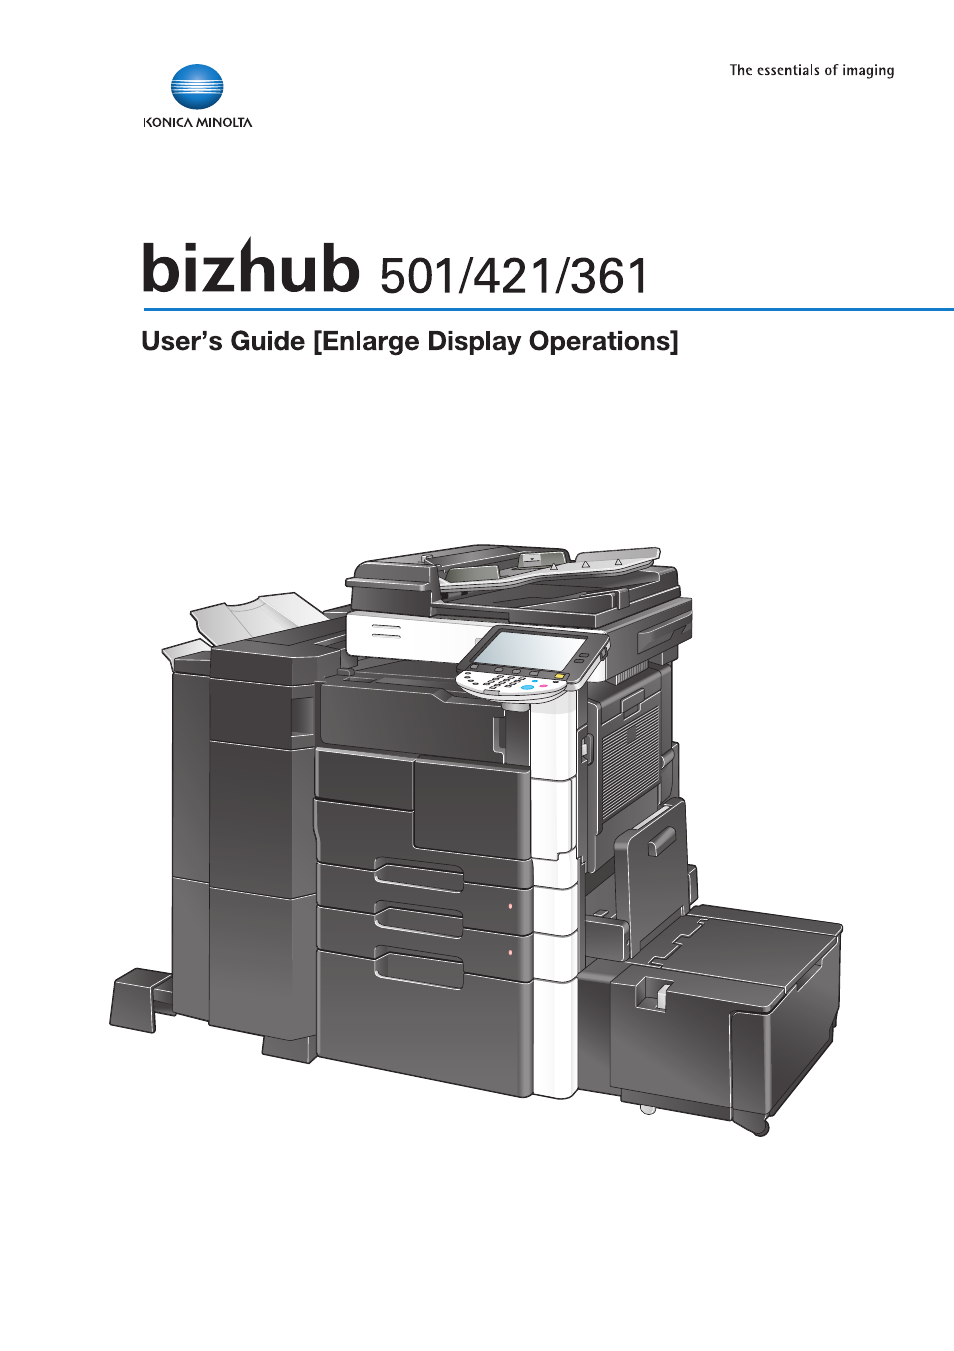 konica minolta bizhub 421 user manual 103 pages also for bizhub rh manualsdir com Konica Minolta Bizhub 421 Brochure Bizhub 421 DefaultPassword